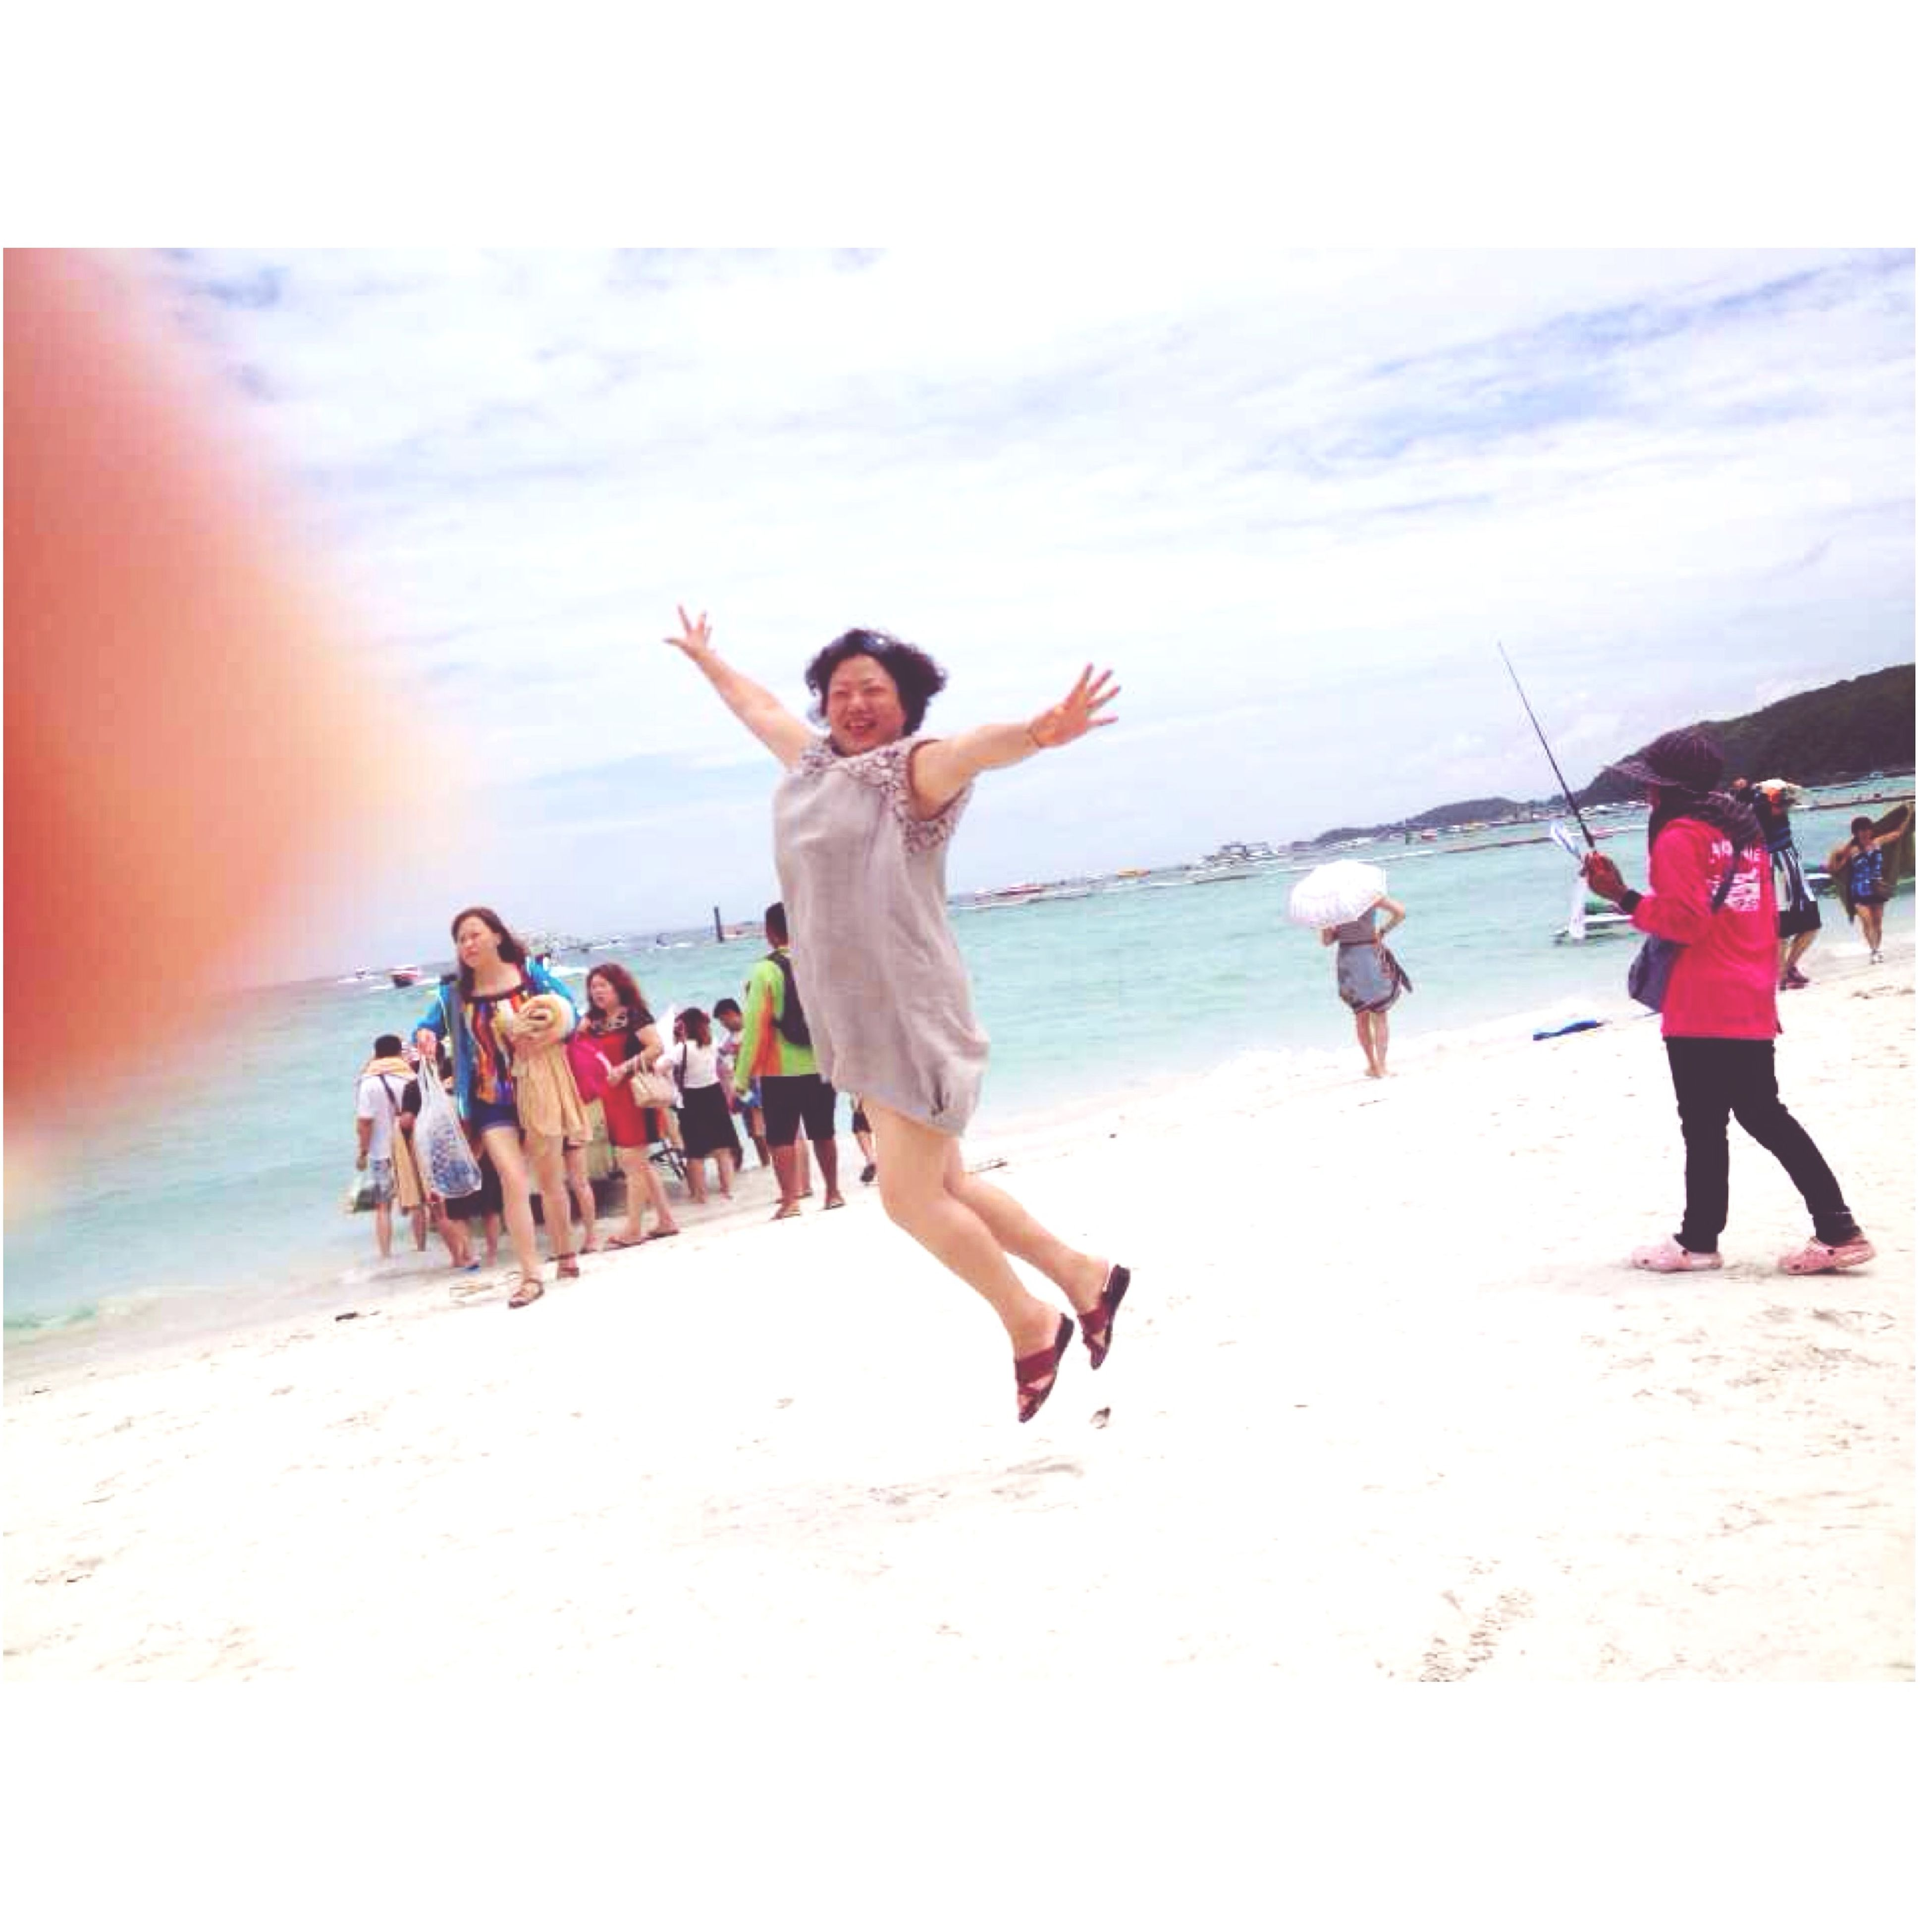 full length, mid-air, leisure activity, lifestyles, jumping, sky, fun, men, skill, sea, enjoyment, flying, vitality, water, motion, balance, side view, extreme sports